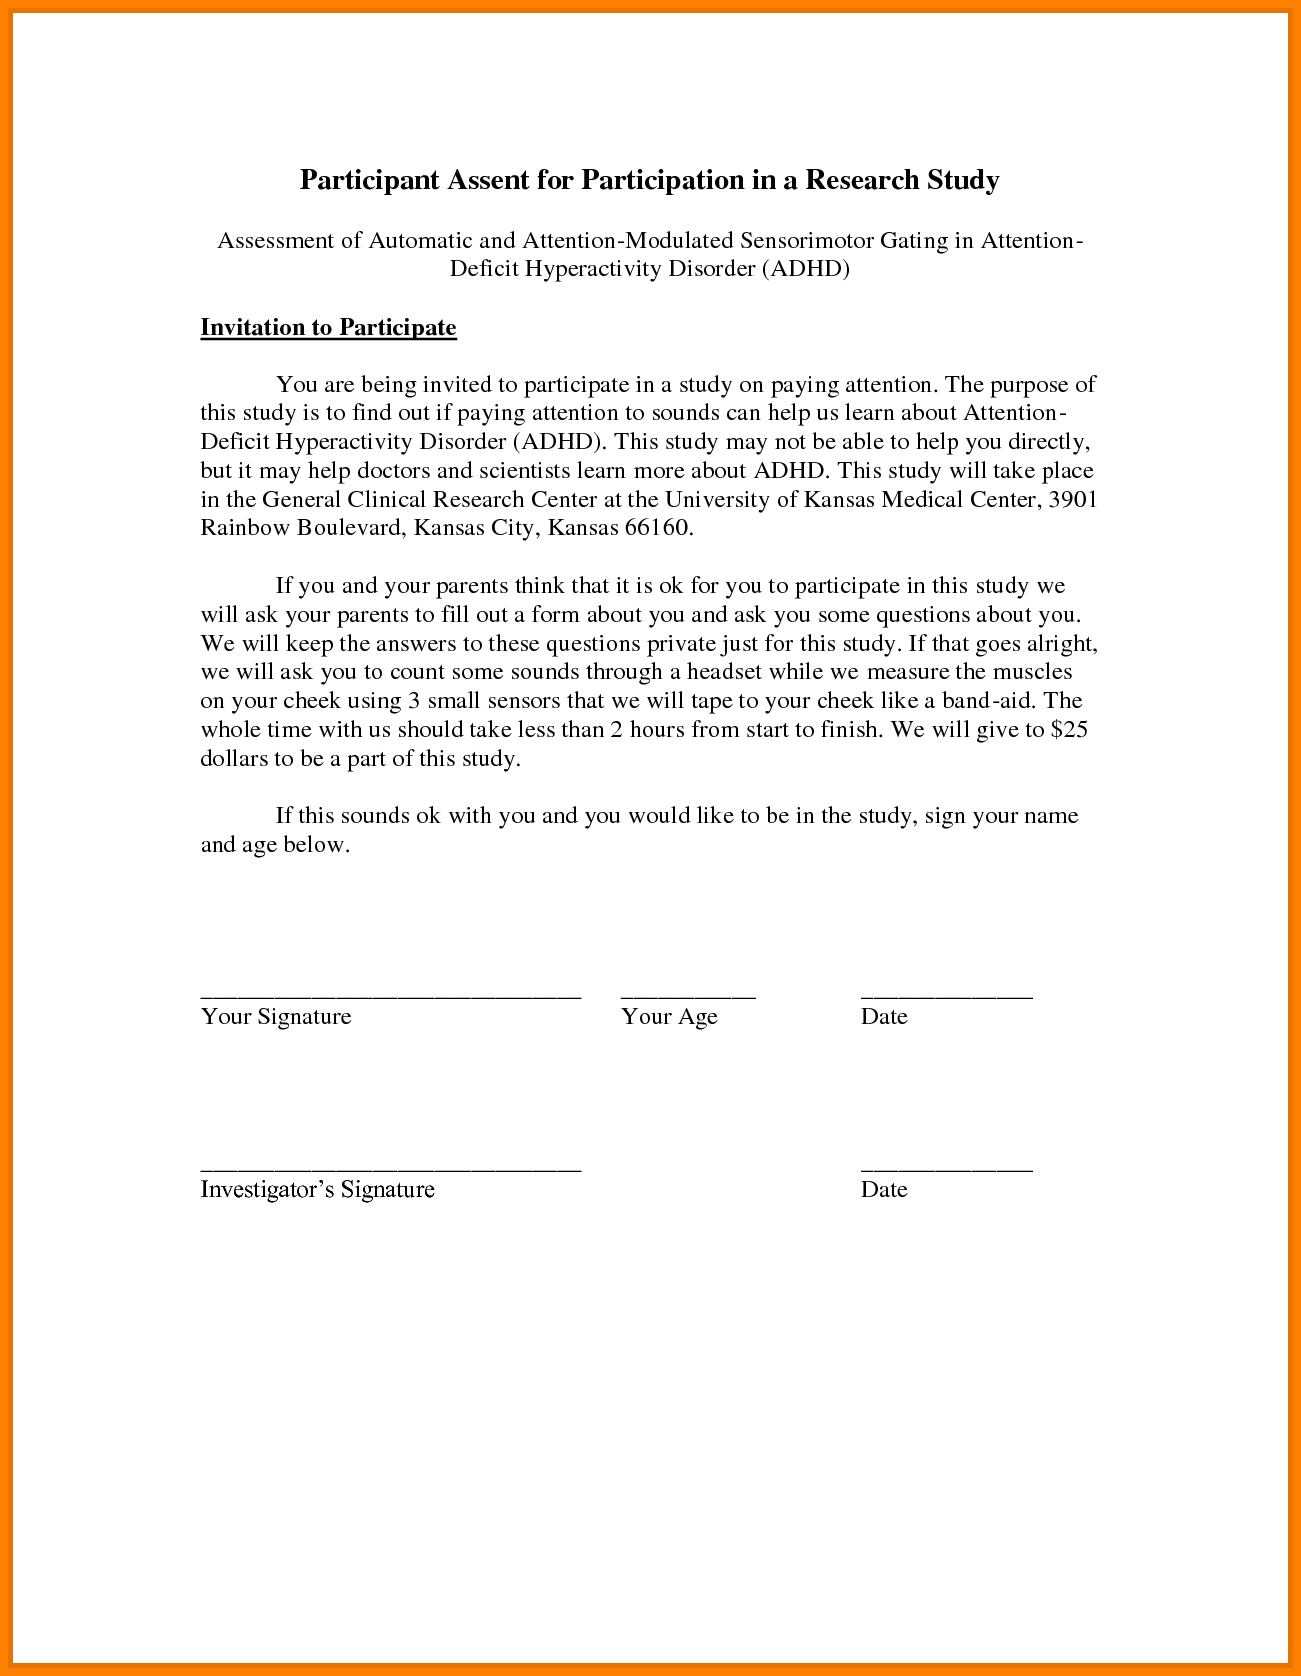 Permission Slip Template Word Service Agreement Cover Forms Sample Form  Free Consent Letter For Children Travelling  Permission Slip Template Word